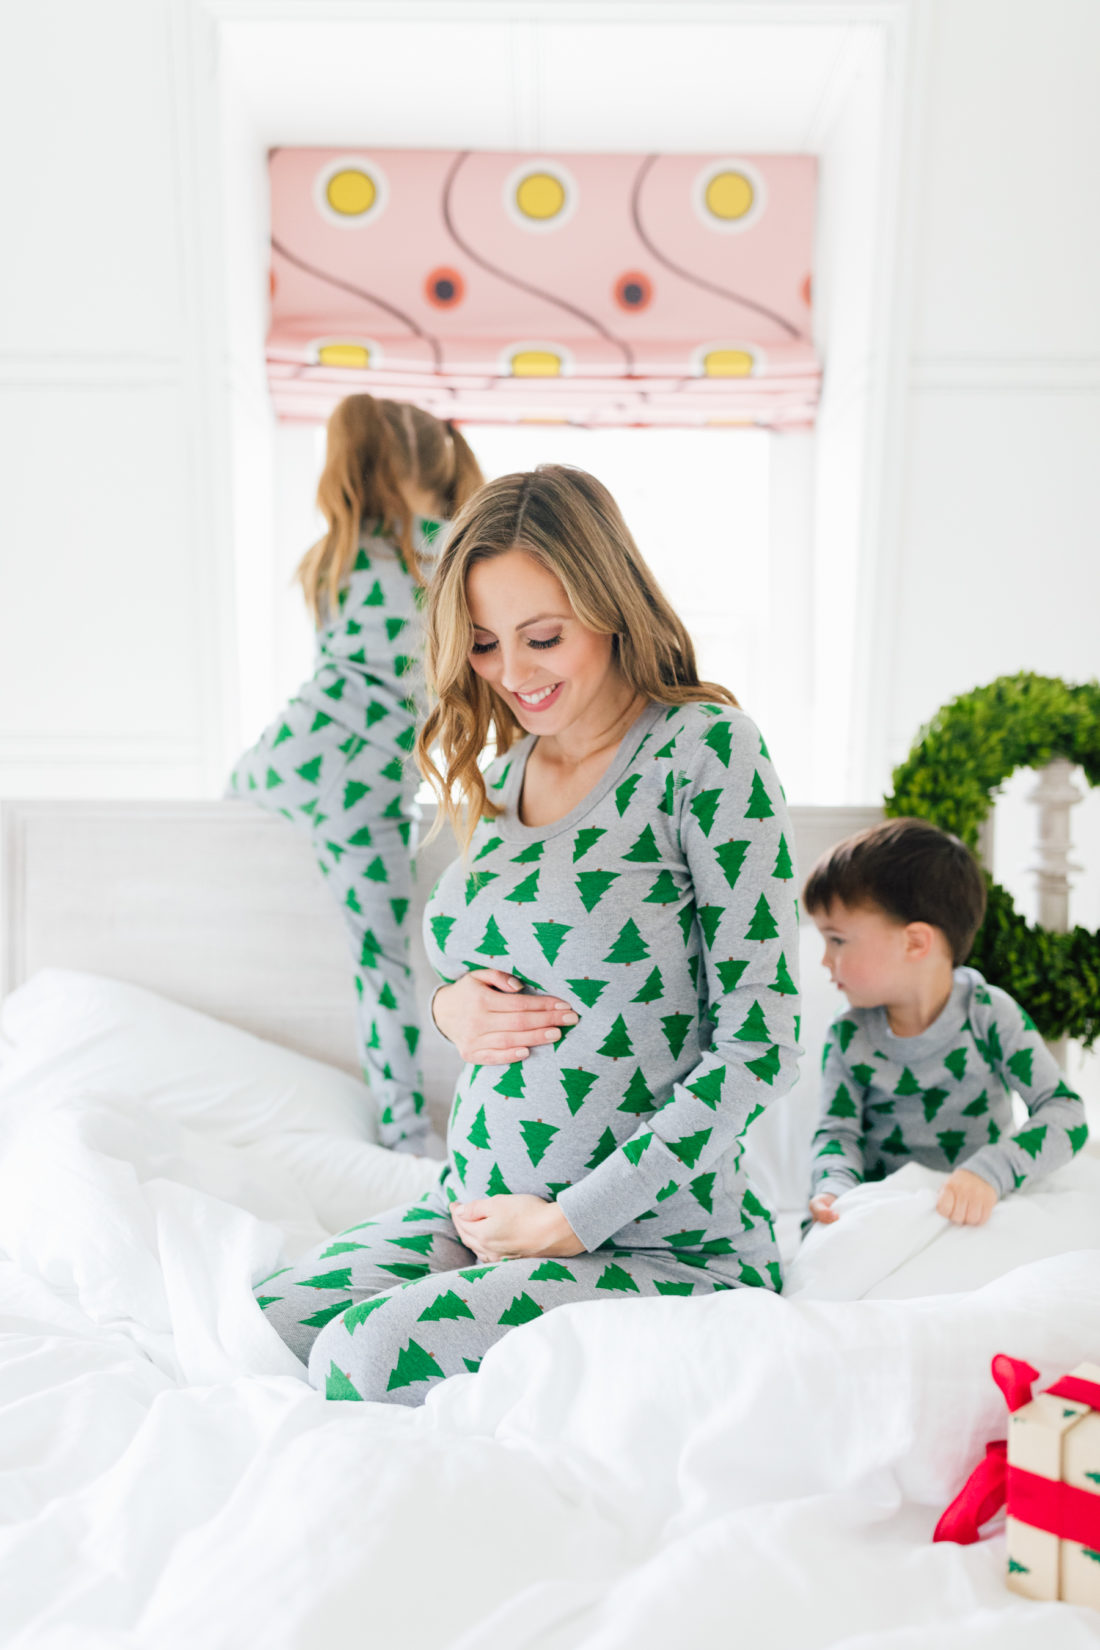 Eva Amurri Martino cradles her baby bump in matching holiday pajamas with her kids